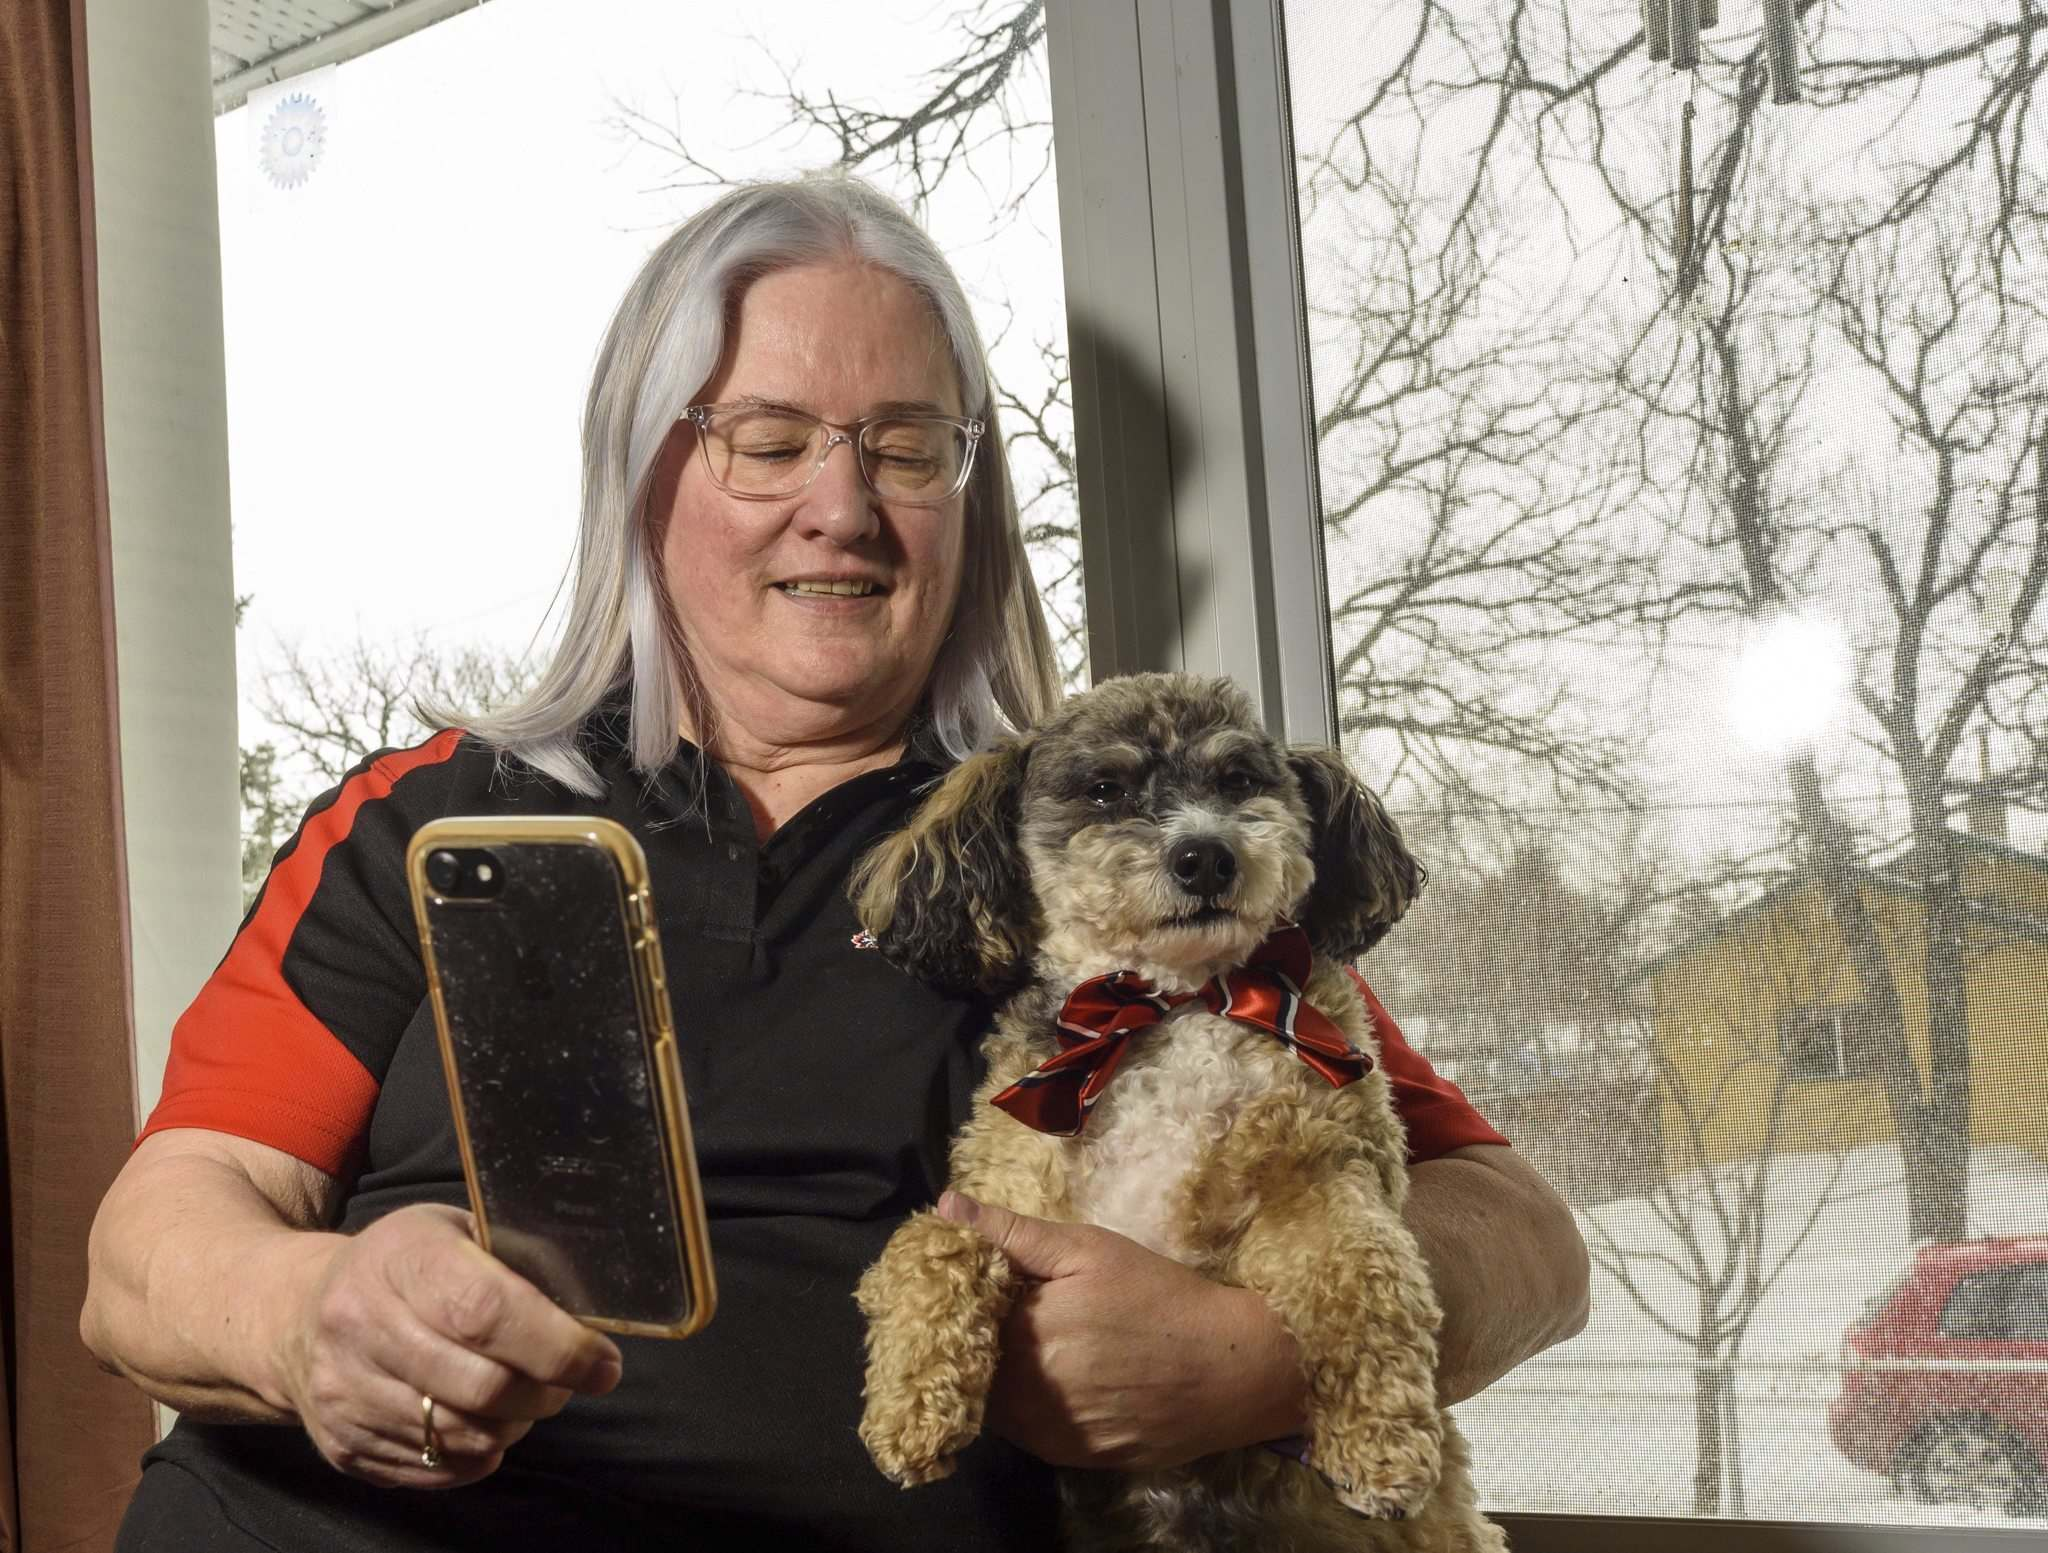 JESSE BOILY / WINNIPEG FREE PRESS</p><p>Donamae Hilton and her dog Mark-Cuss livestream their visit to seniors on Thursday. Mark-Cuss is a St. Johns Ambulance service dog and does visits all across the city, but has had to stop due to social distancing.</p>